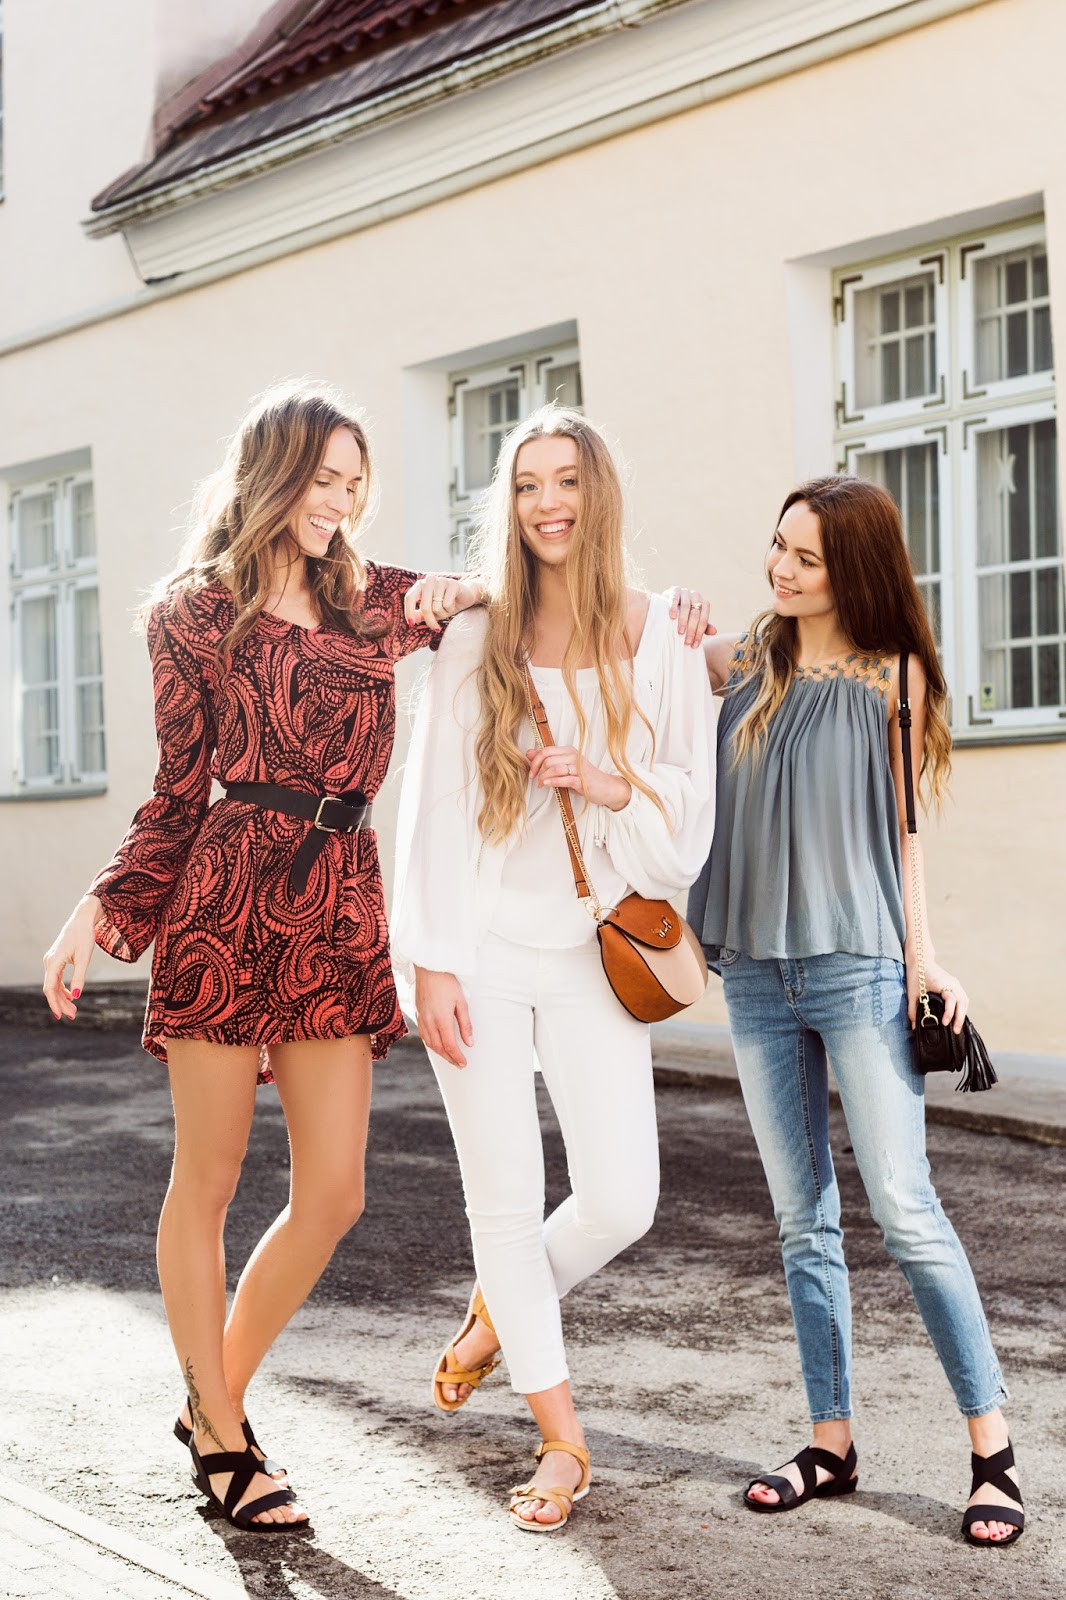 sienna hearts lindex spring campaign collection